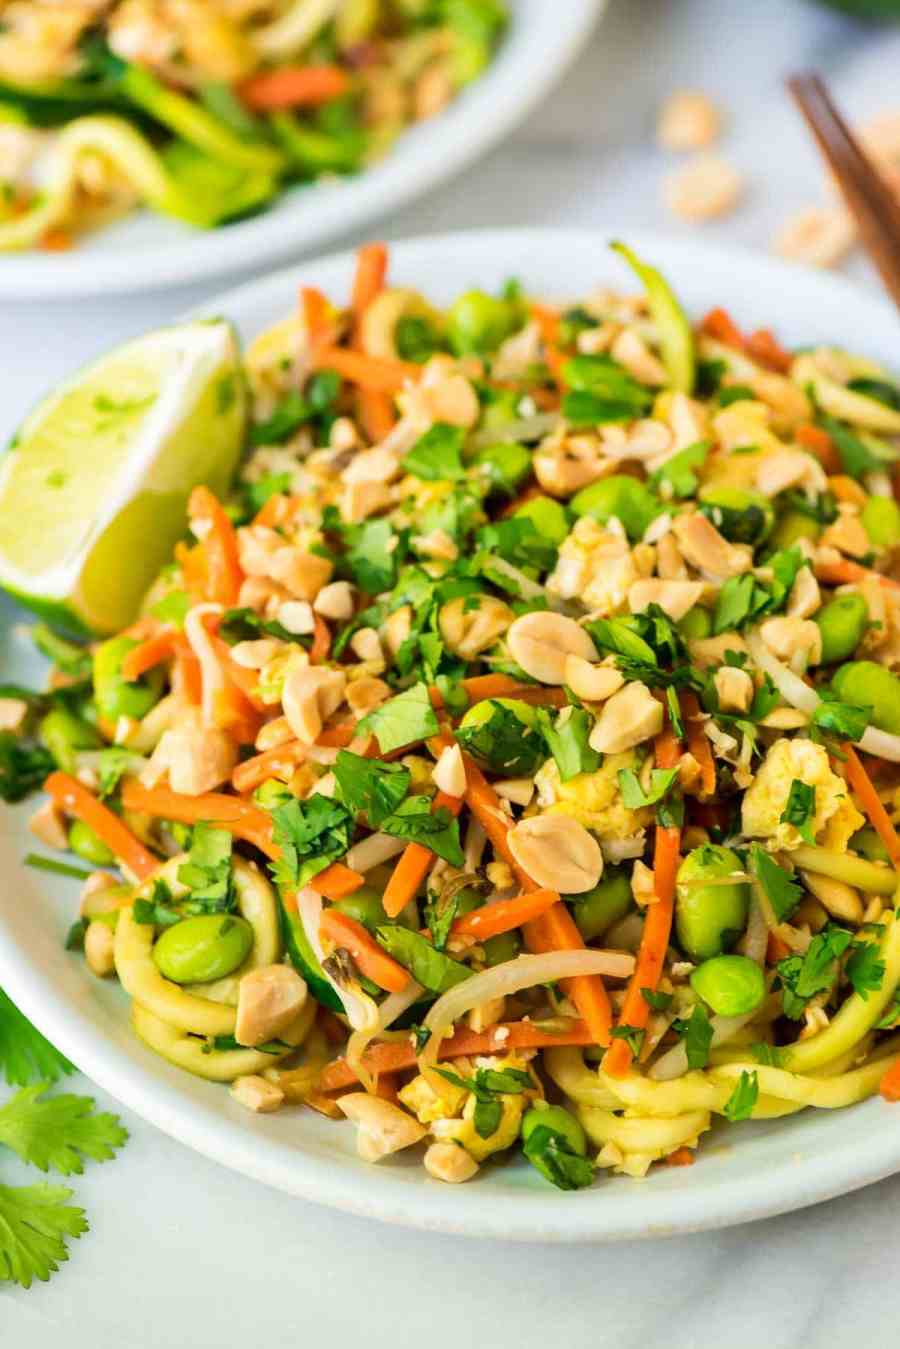 Zoodle Pad Thai in a white bowl with chopsticks and garnished with lime wedges, cilantro and peanuts